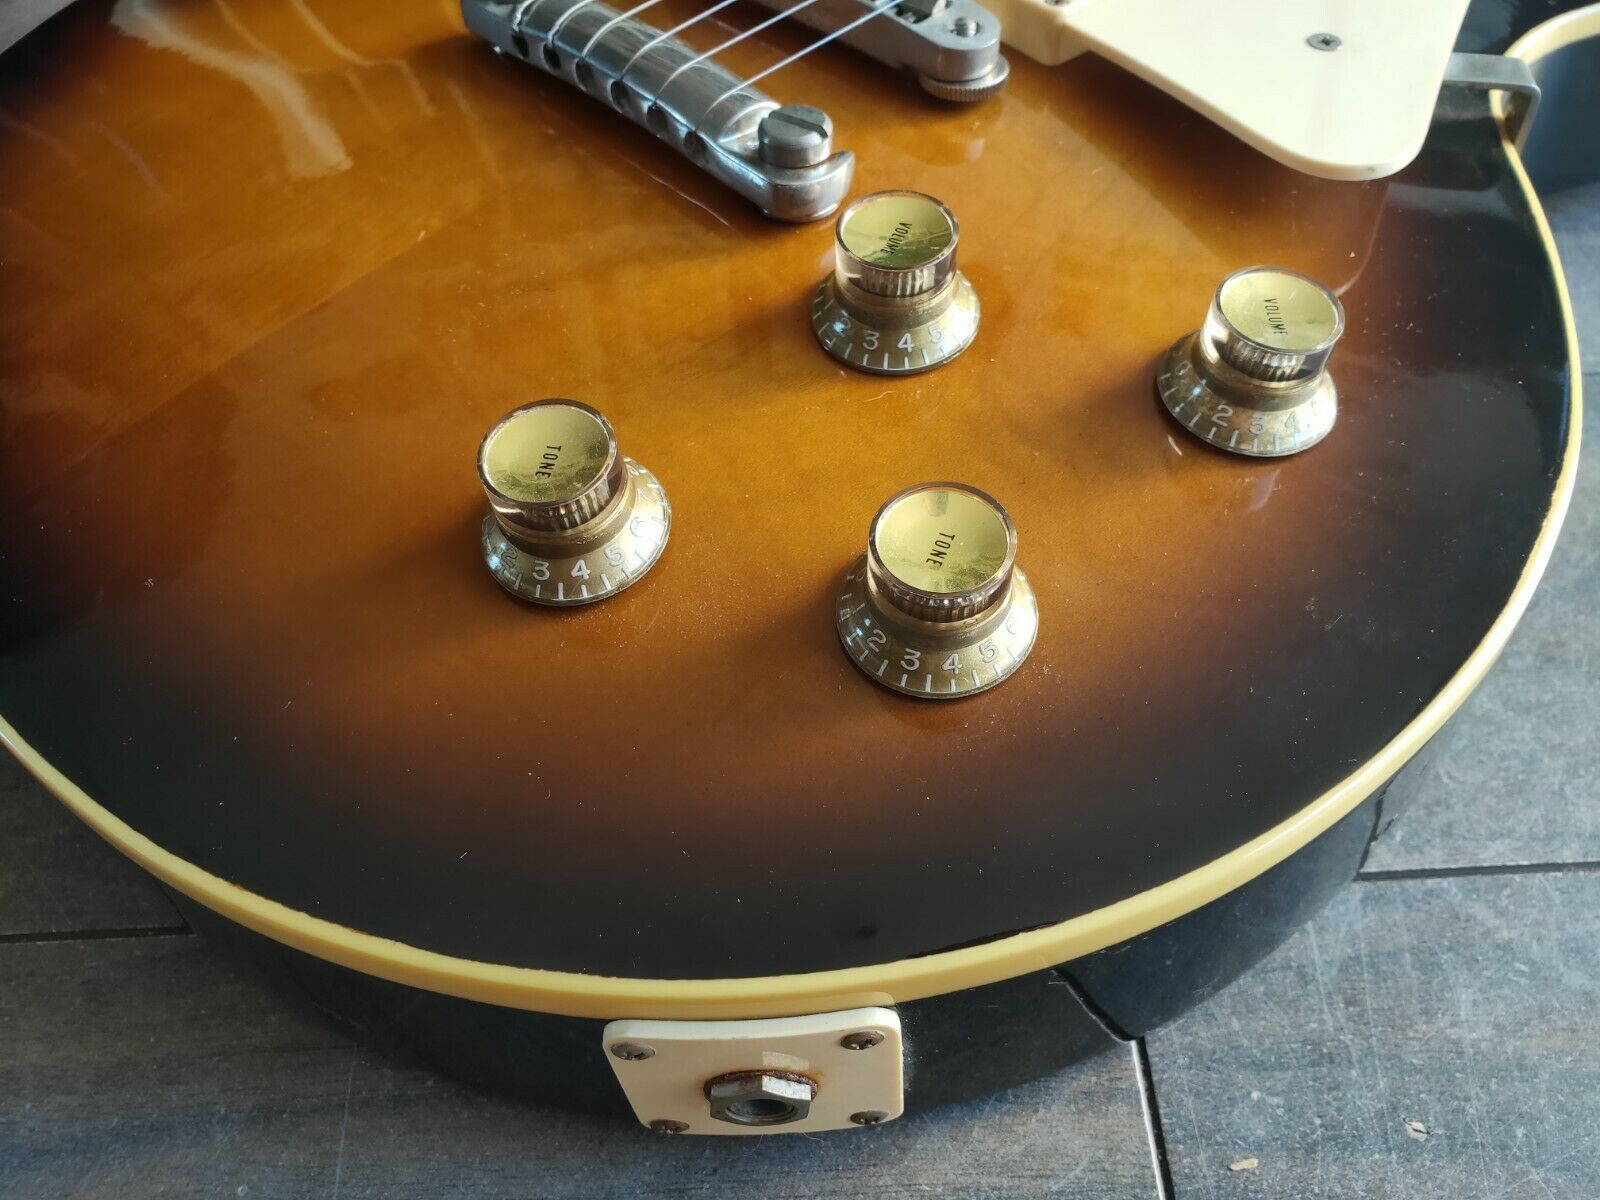 1979 Greco EG-450 Vintage Les Paul Standard (Made in Japan) Brown Sunburst